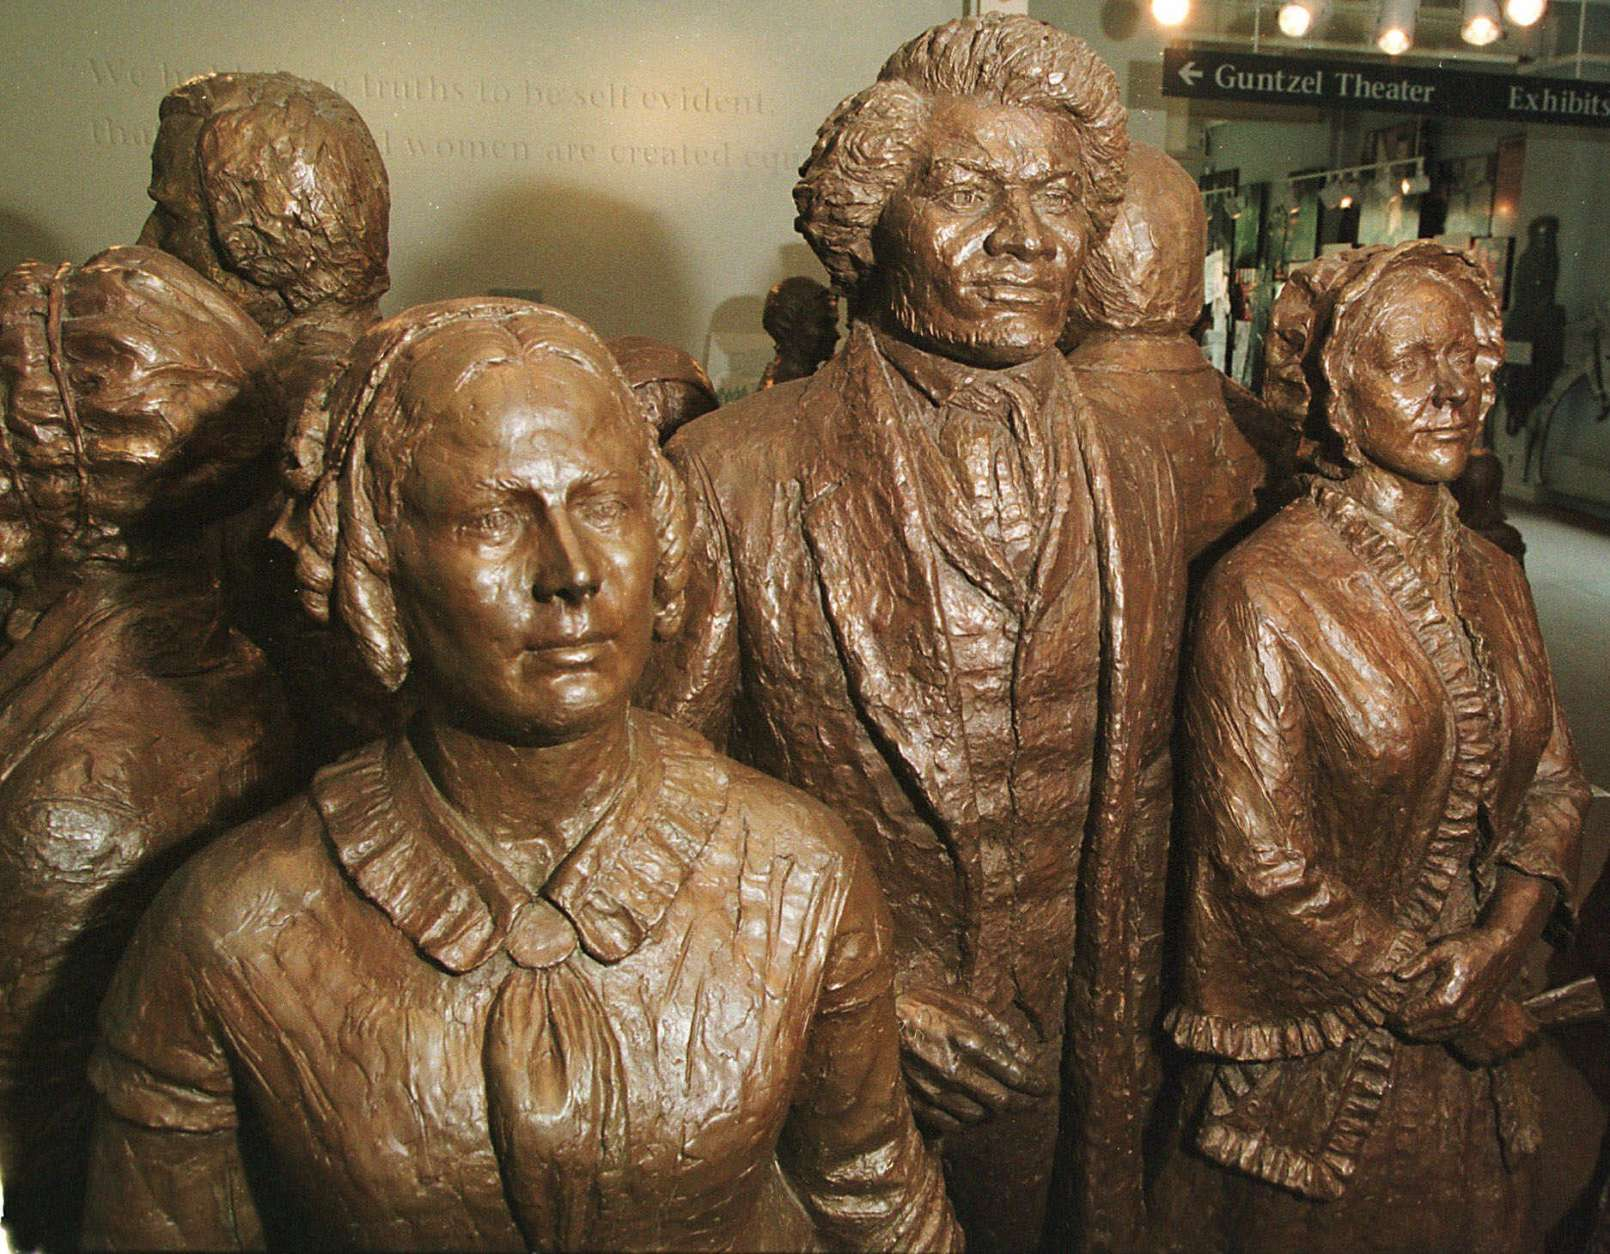 ADVANCE FOR AUG. 12-13-Near life size bronze statues at the National Women's Rights Park in Seneca Falls, N.Y. on July 25, 2000. They represent attendees of the first women's rights convention held at the nearby Weslyan Chape.   Located along U.S. 20, this highway traverses nearly the same countryside is did 201-years ago when it was originally chartered as the First Great Western Turnpike.  (AP Photo/Michael Okoniewski)